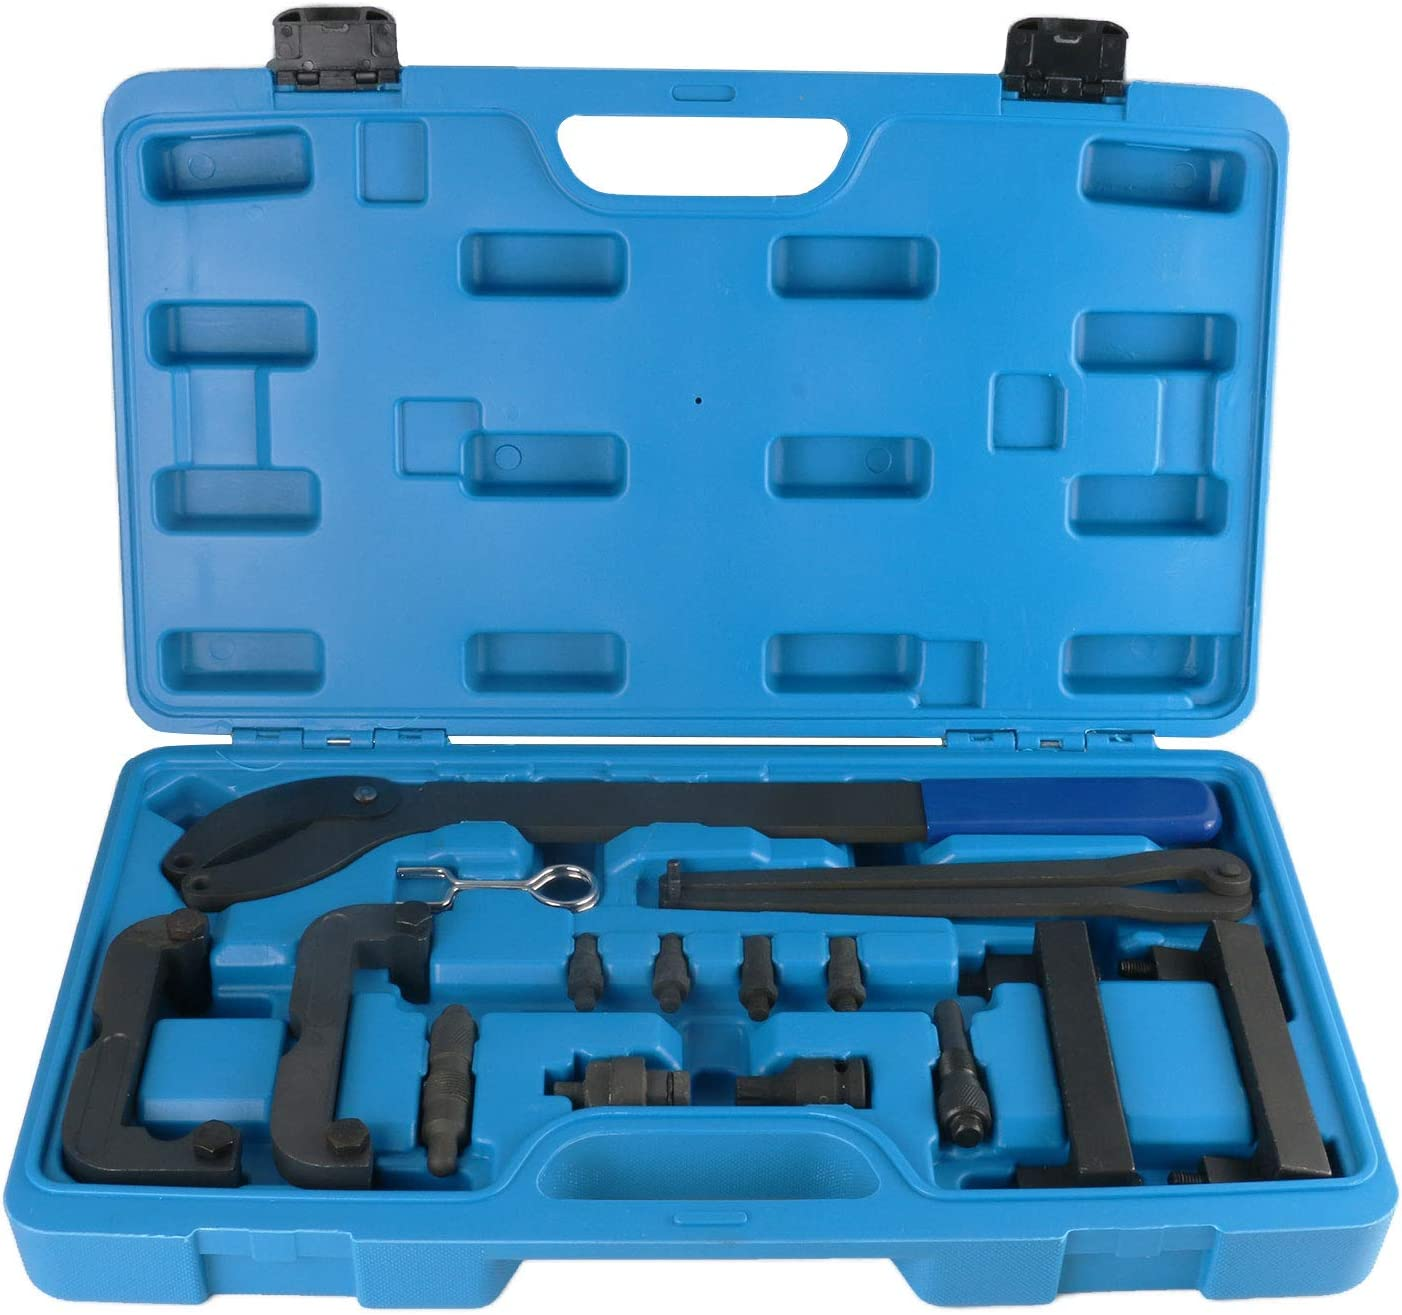 Mrcartool Engine Camshaft Alignment Tool Timing Belt Locking Tool Kit Compatible with VW Audi 2.4 2.8 3.2 4.2 3.0T OEM T40133 T40070